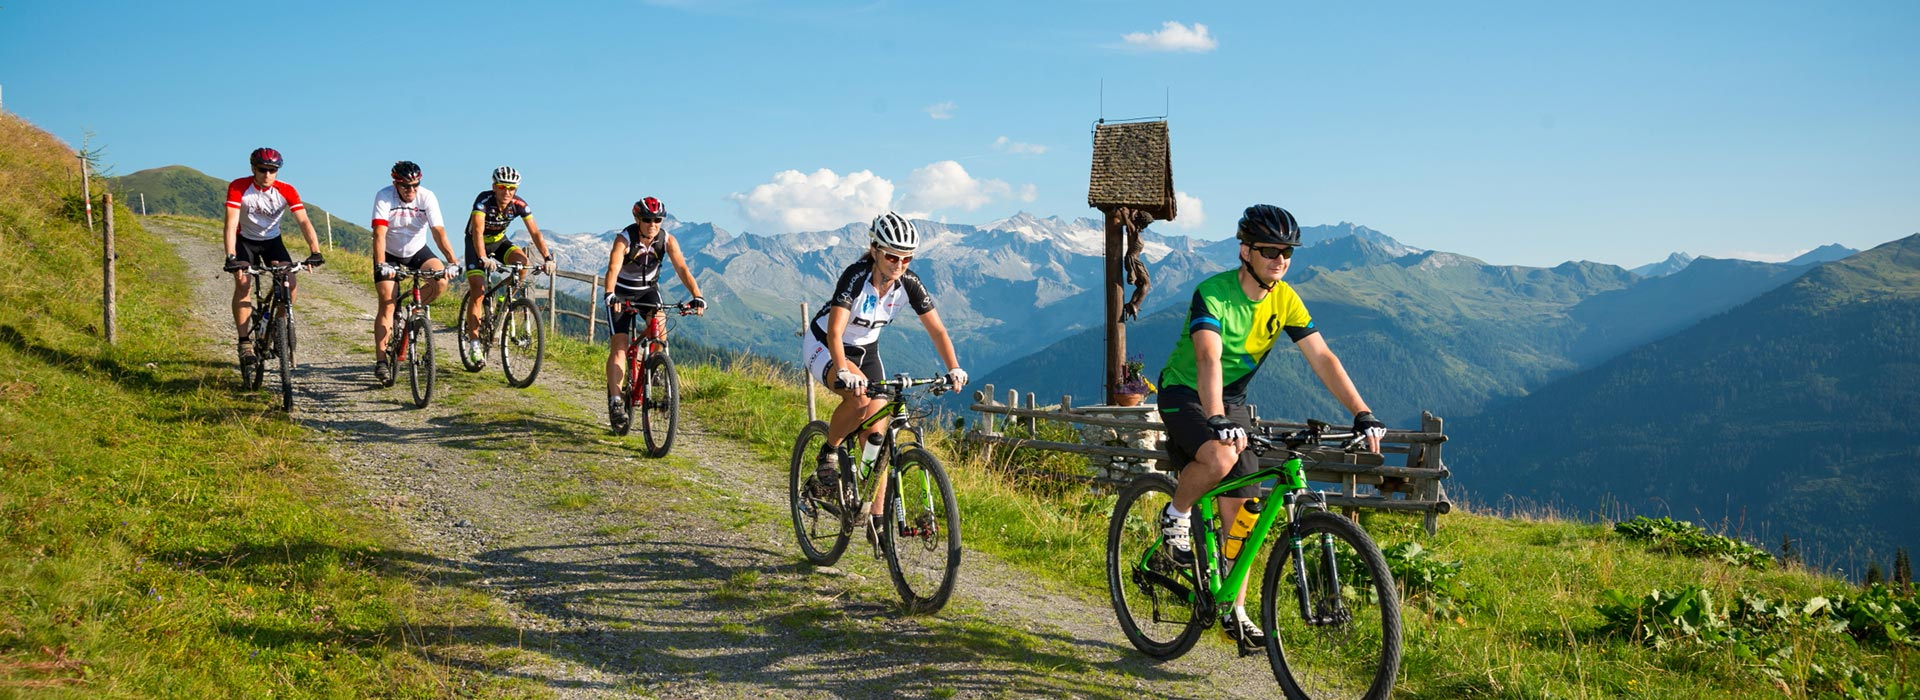 Mountainbike Sommer Grossaltal